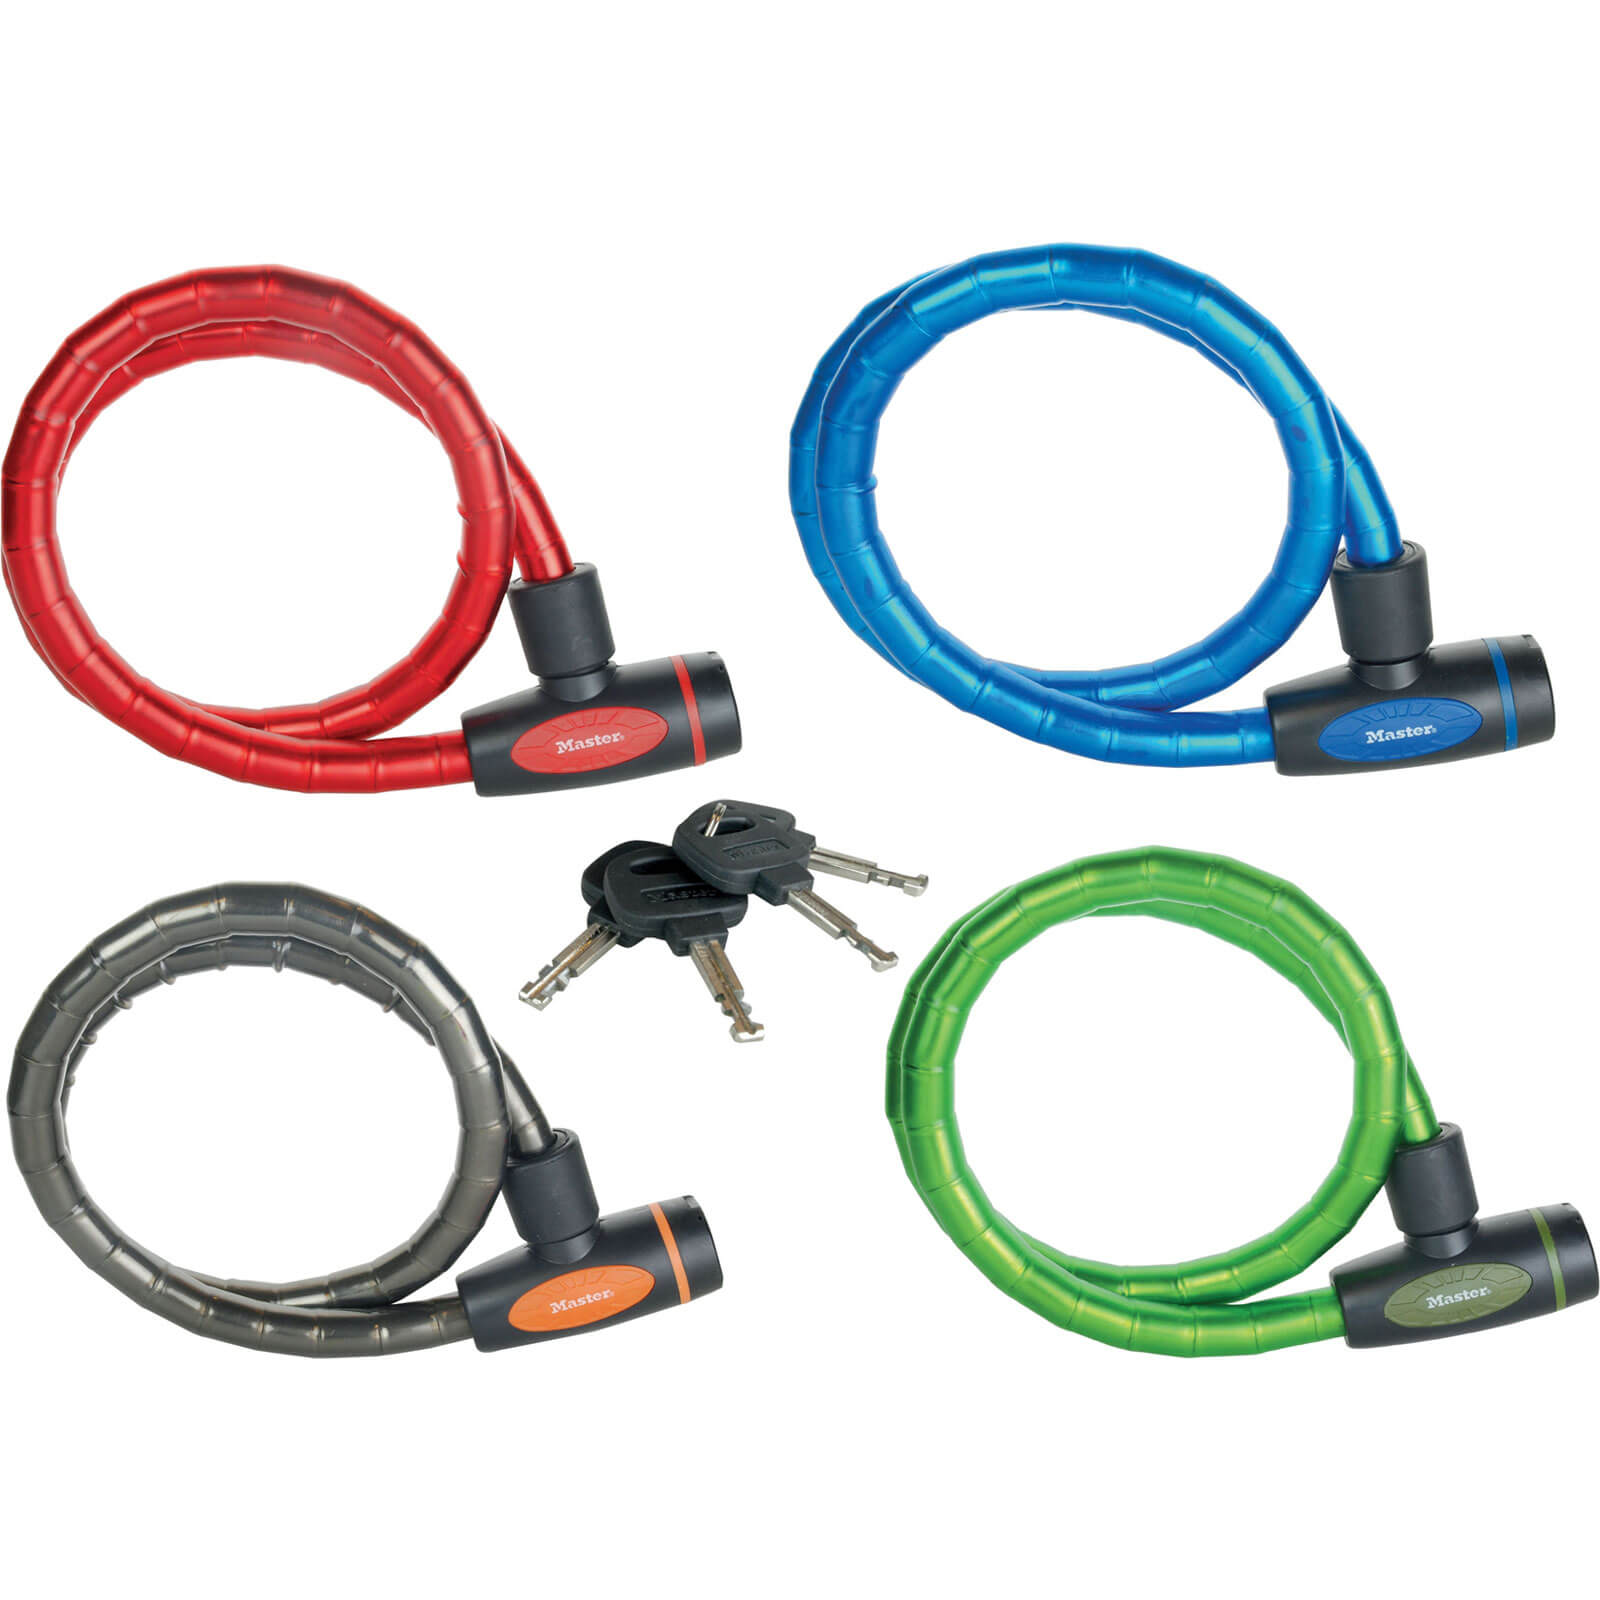 MasterLock 1m x 18mm Keyed Armoured Cable Locks Pack of 4 Assorted Colours